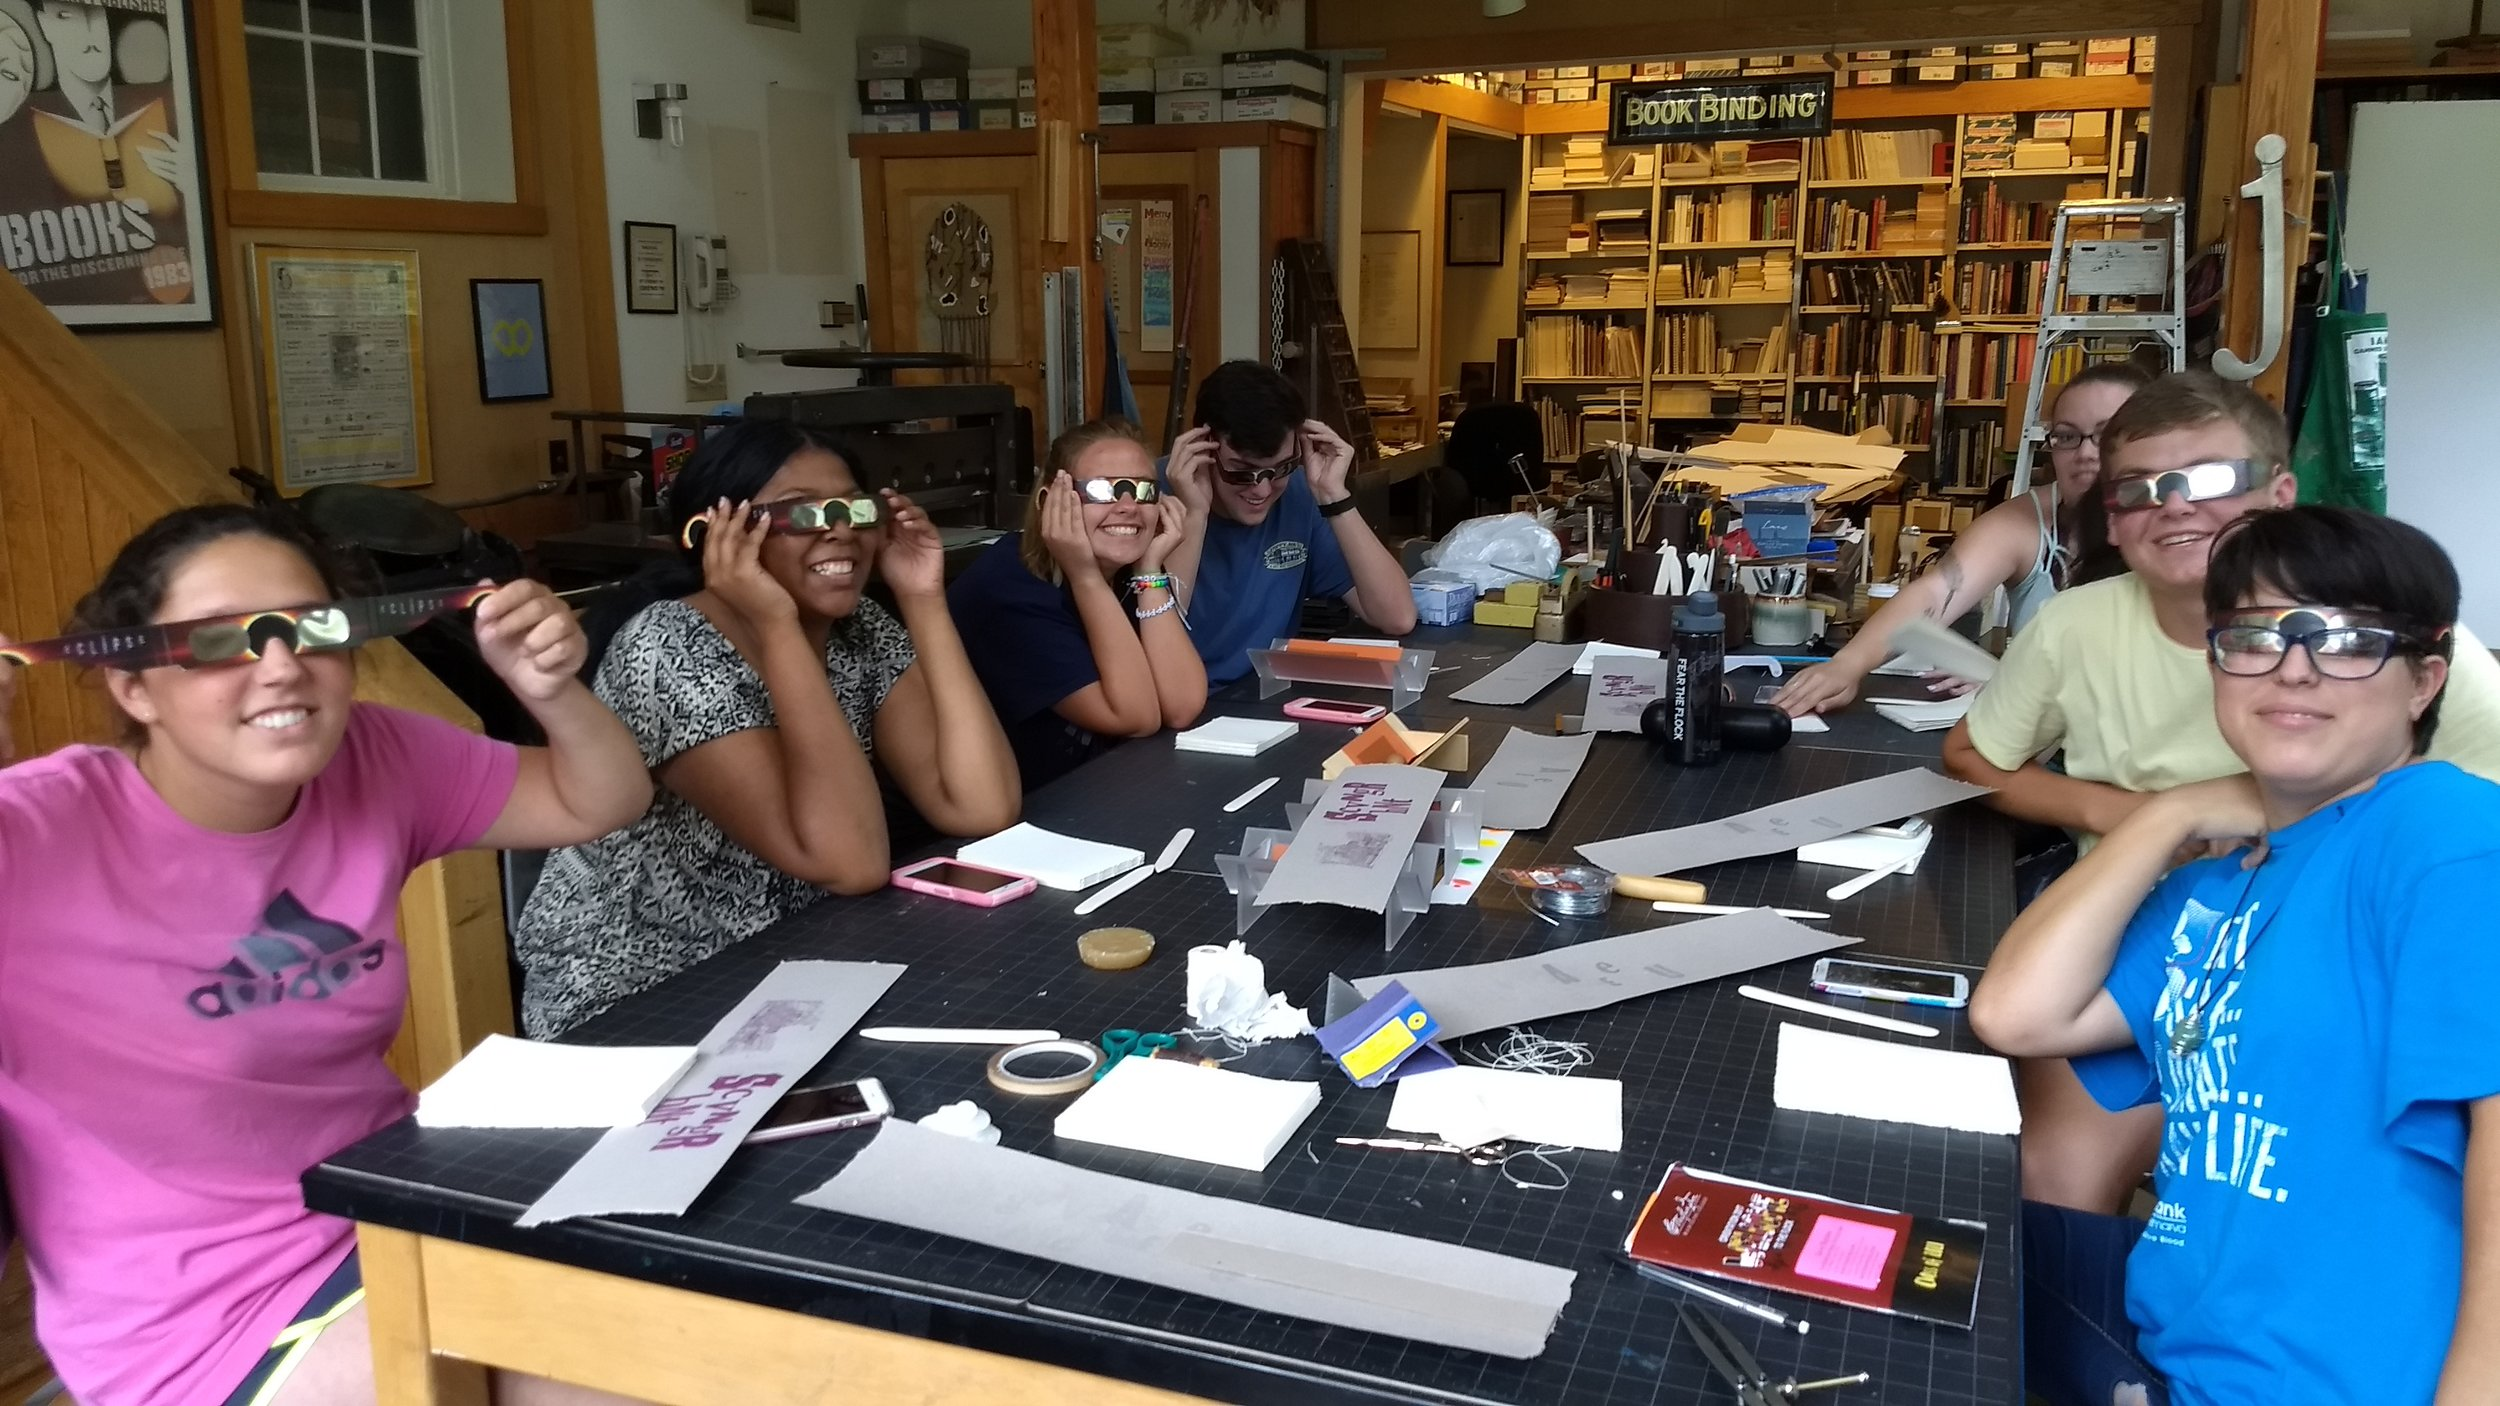 Incoming Washington College freshmen work right through the solar eclipse of 2017 to bind their books,